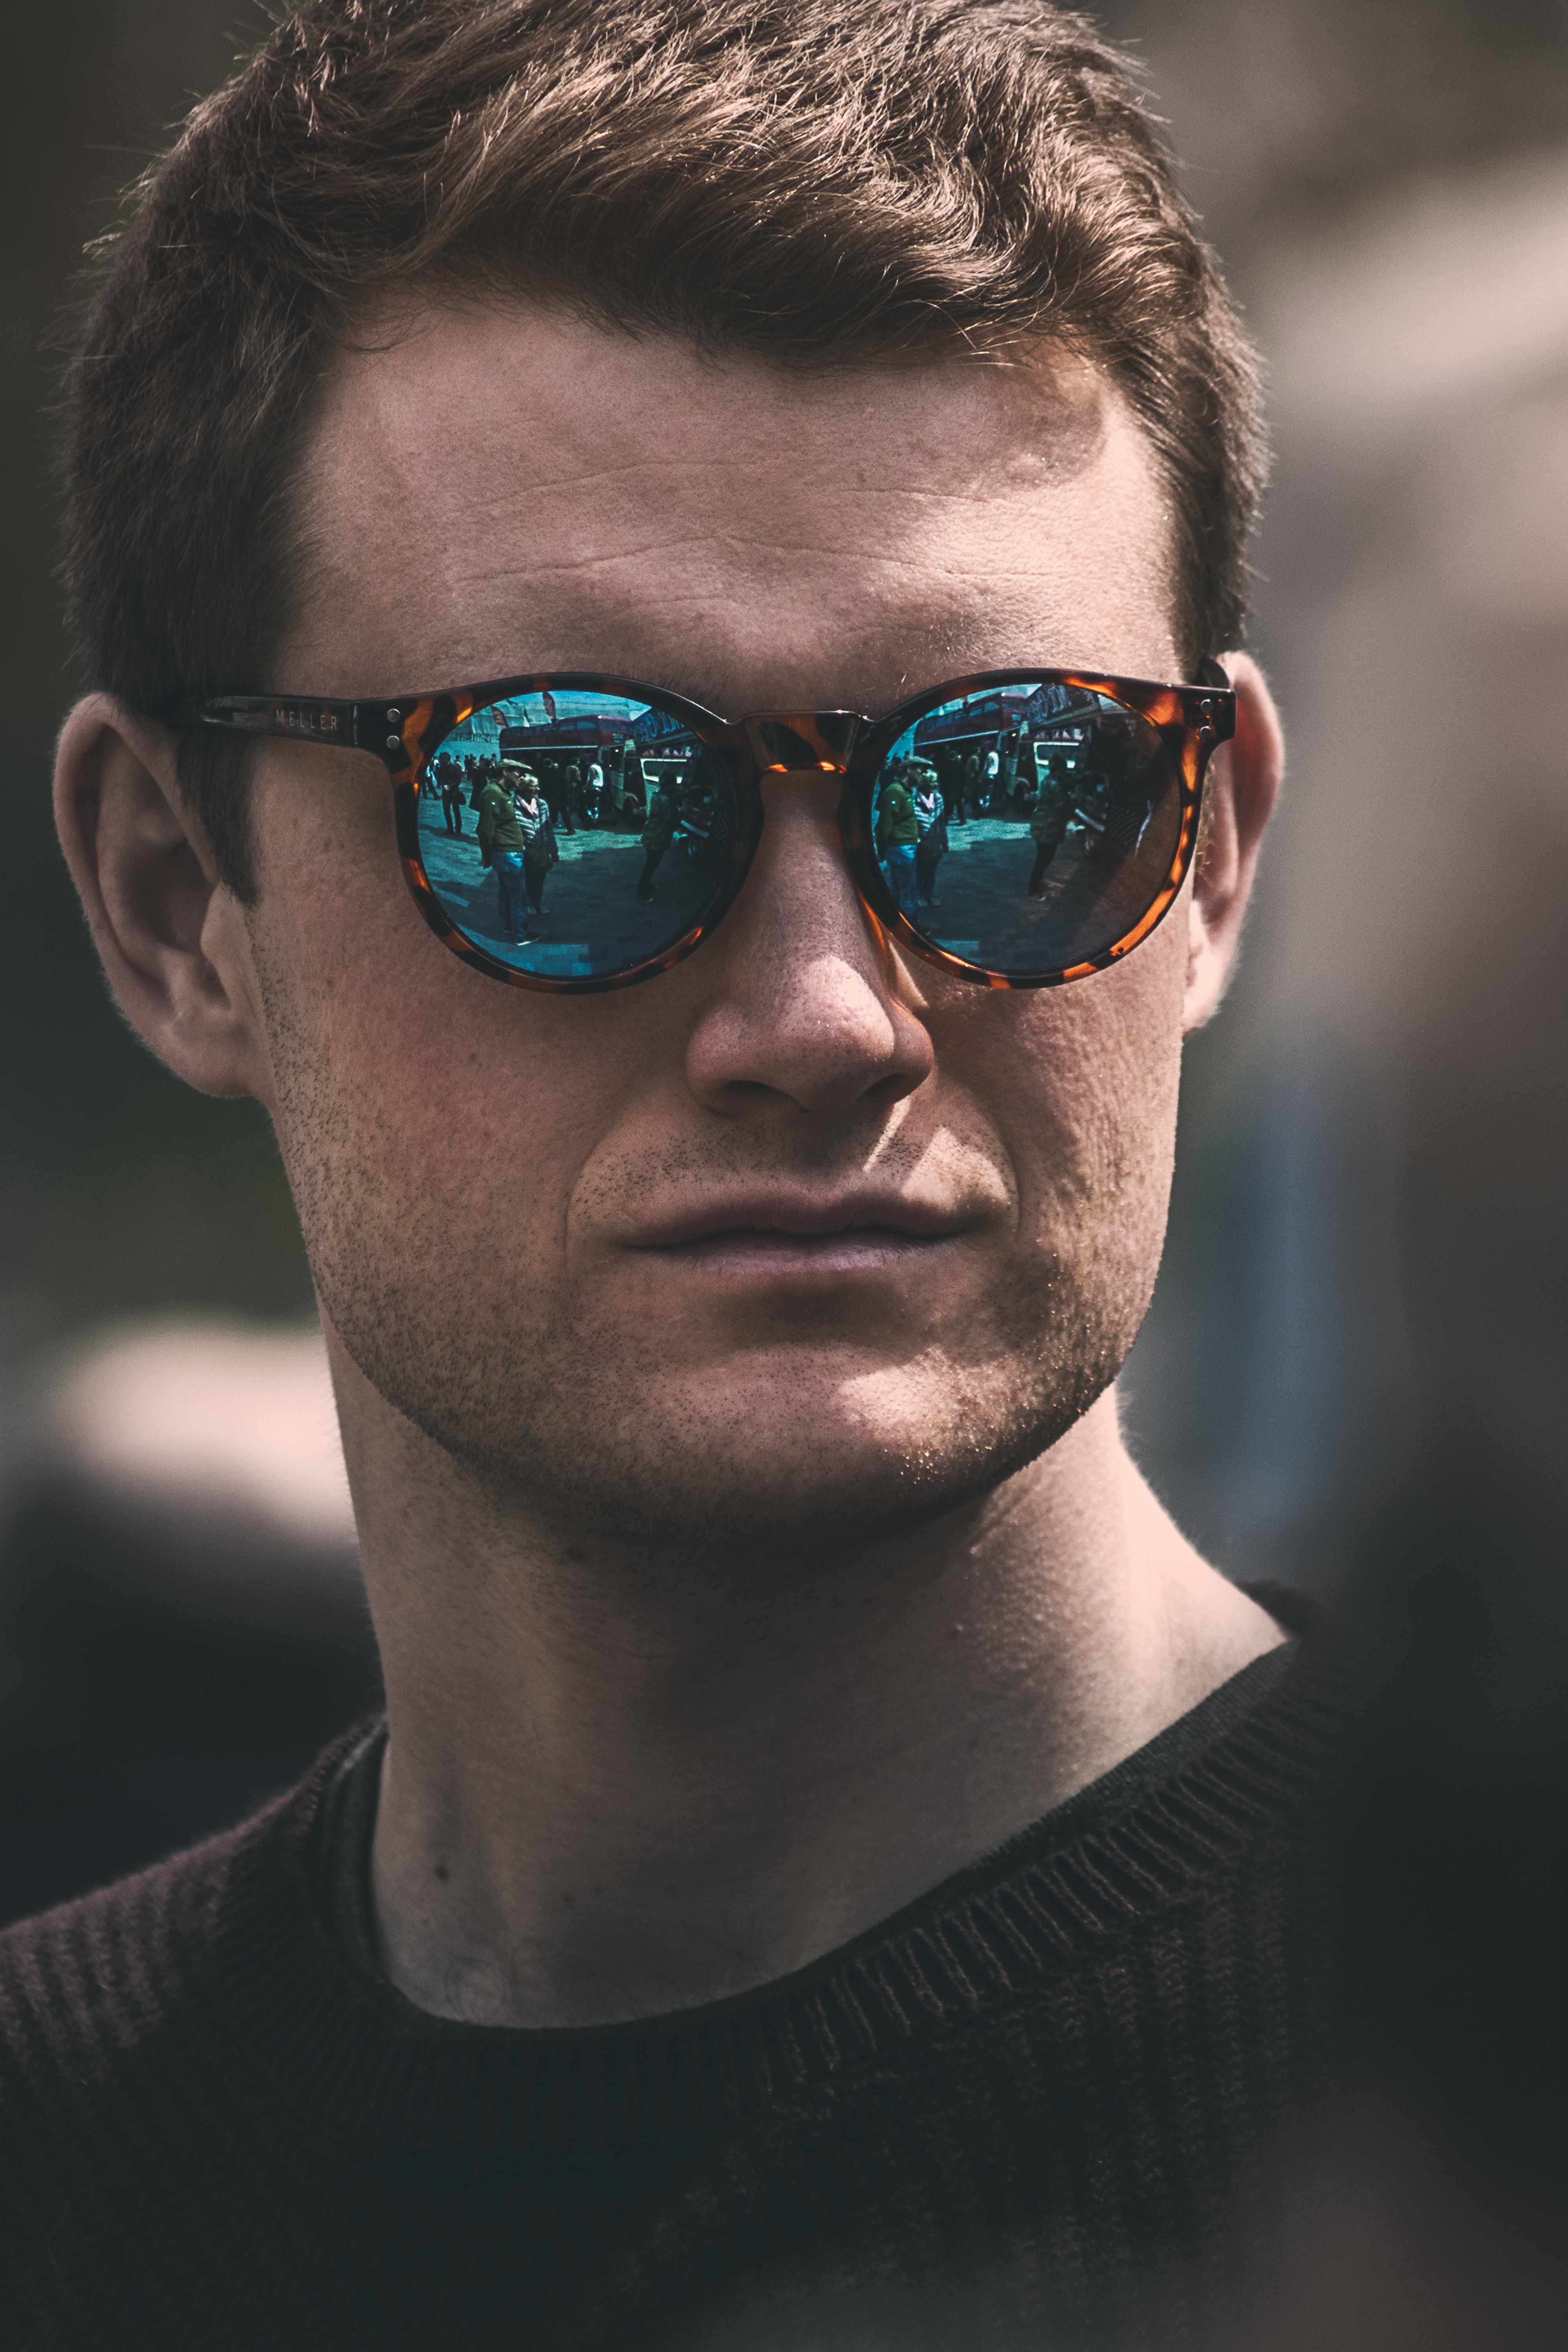 Man in reflective hipster sunglasses looking out at a busy city